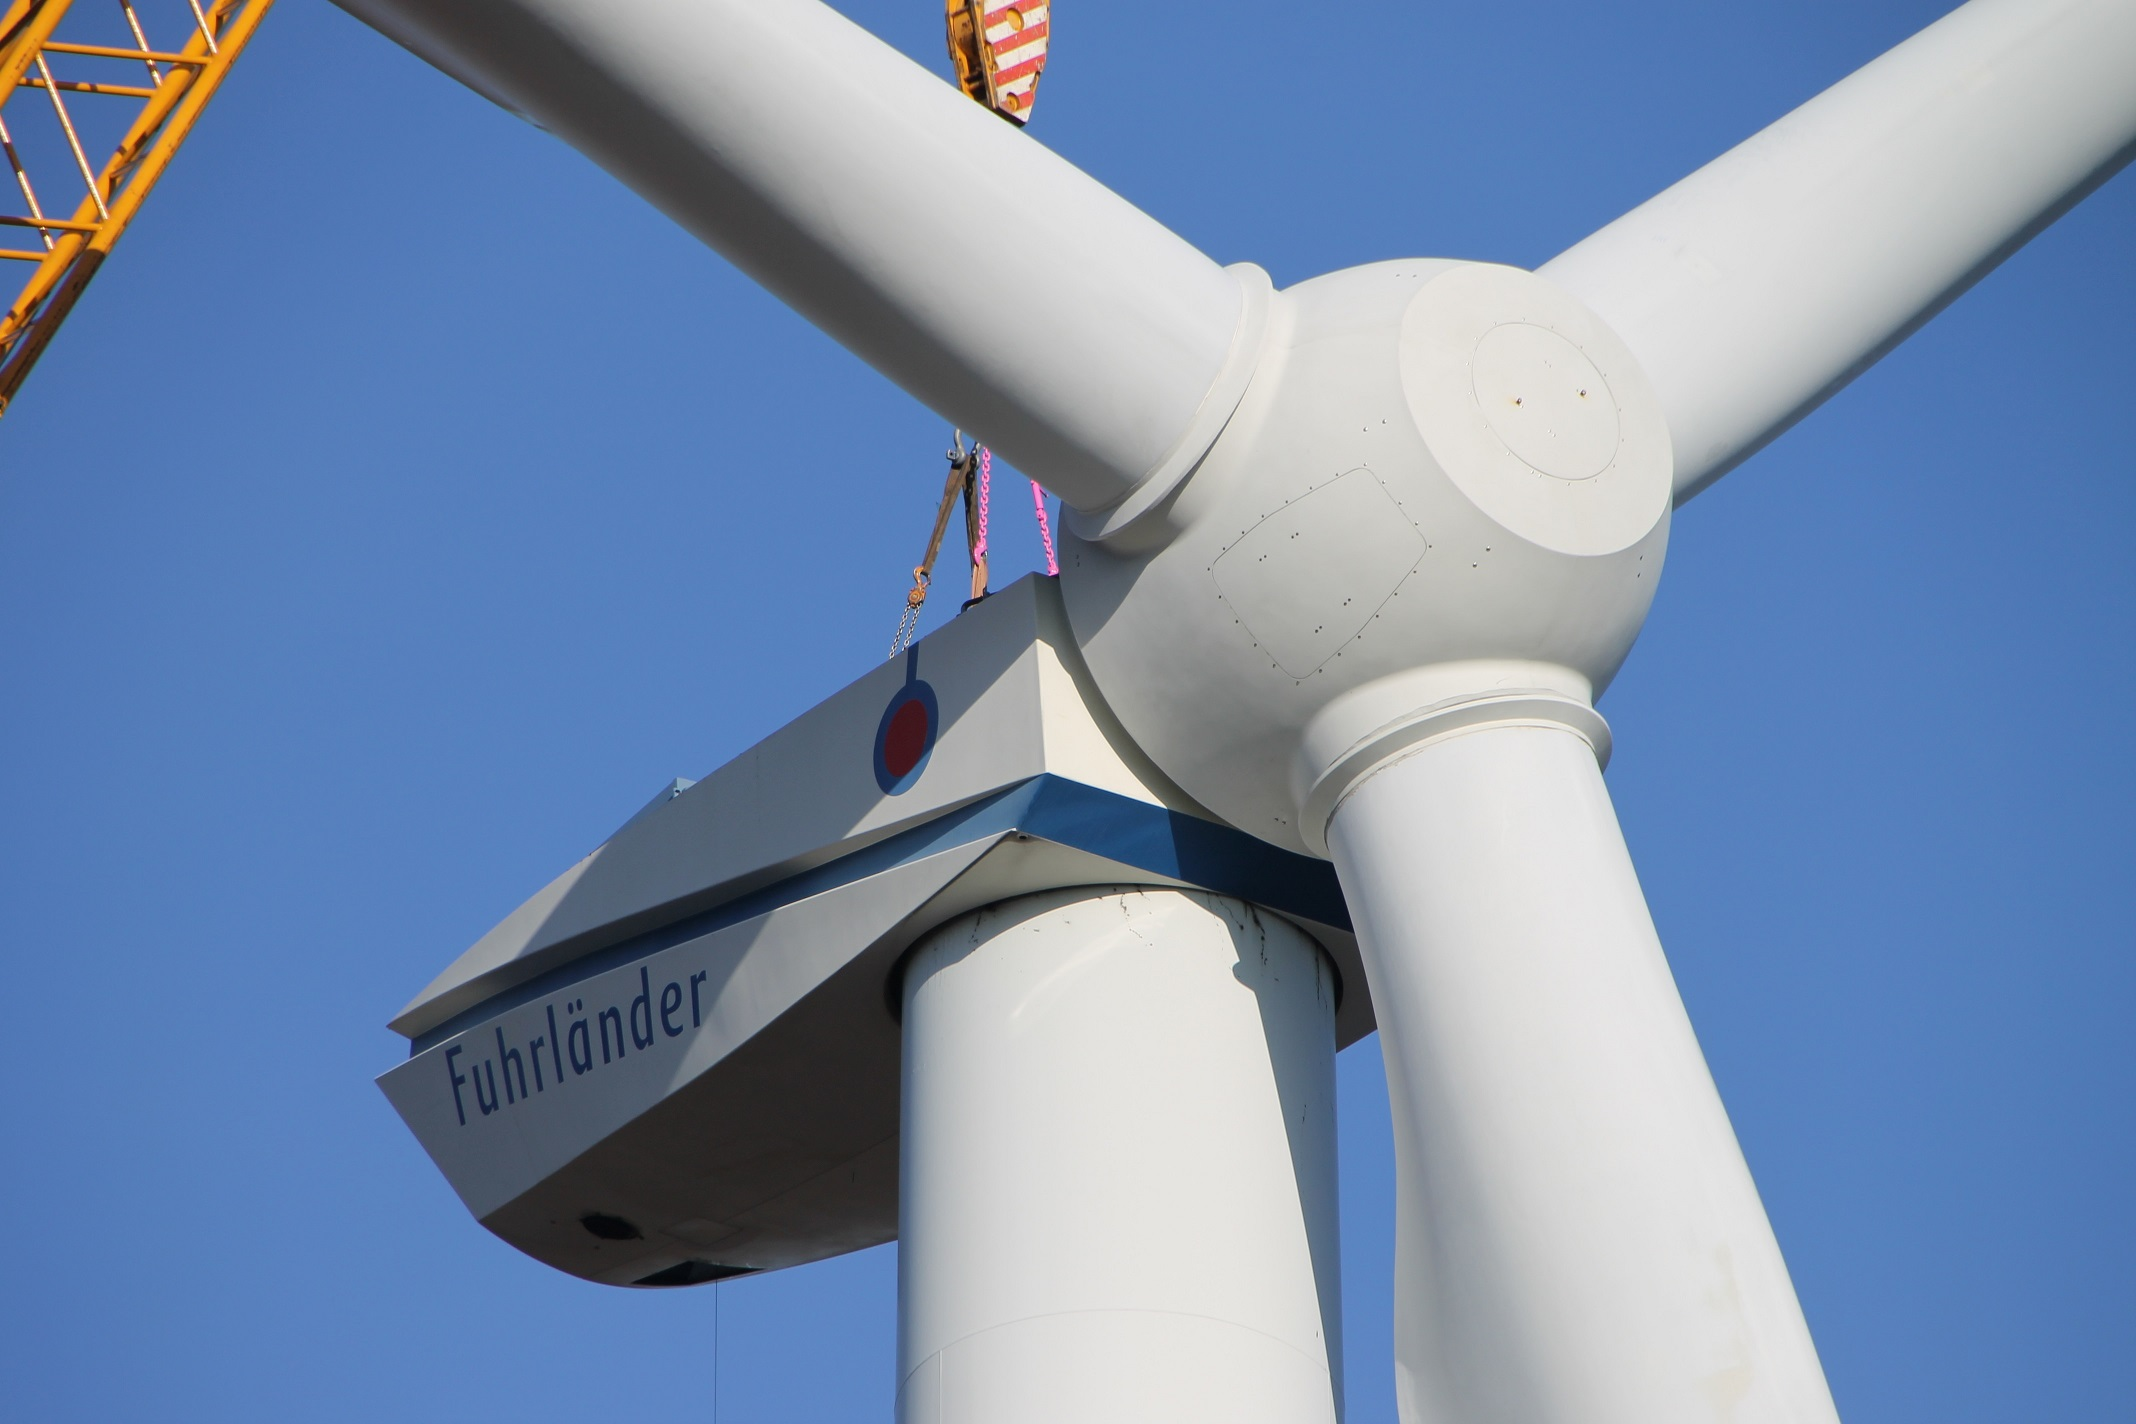 Fuhrlander Windtechnology starts producing 3.2 MW wind turbi